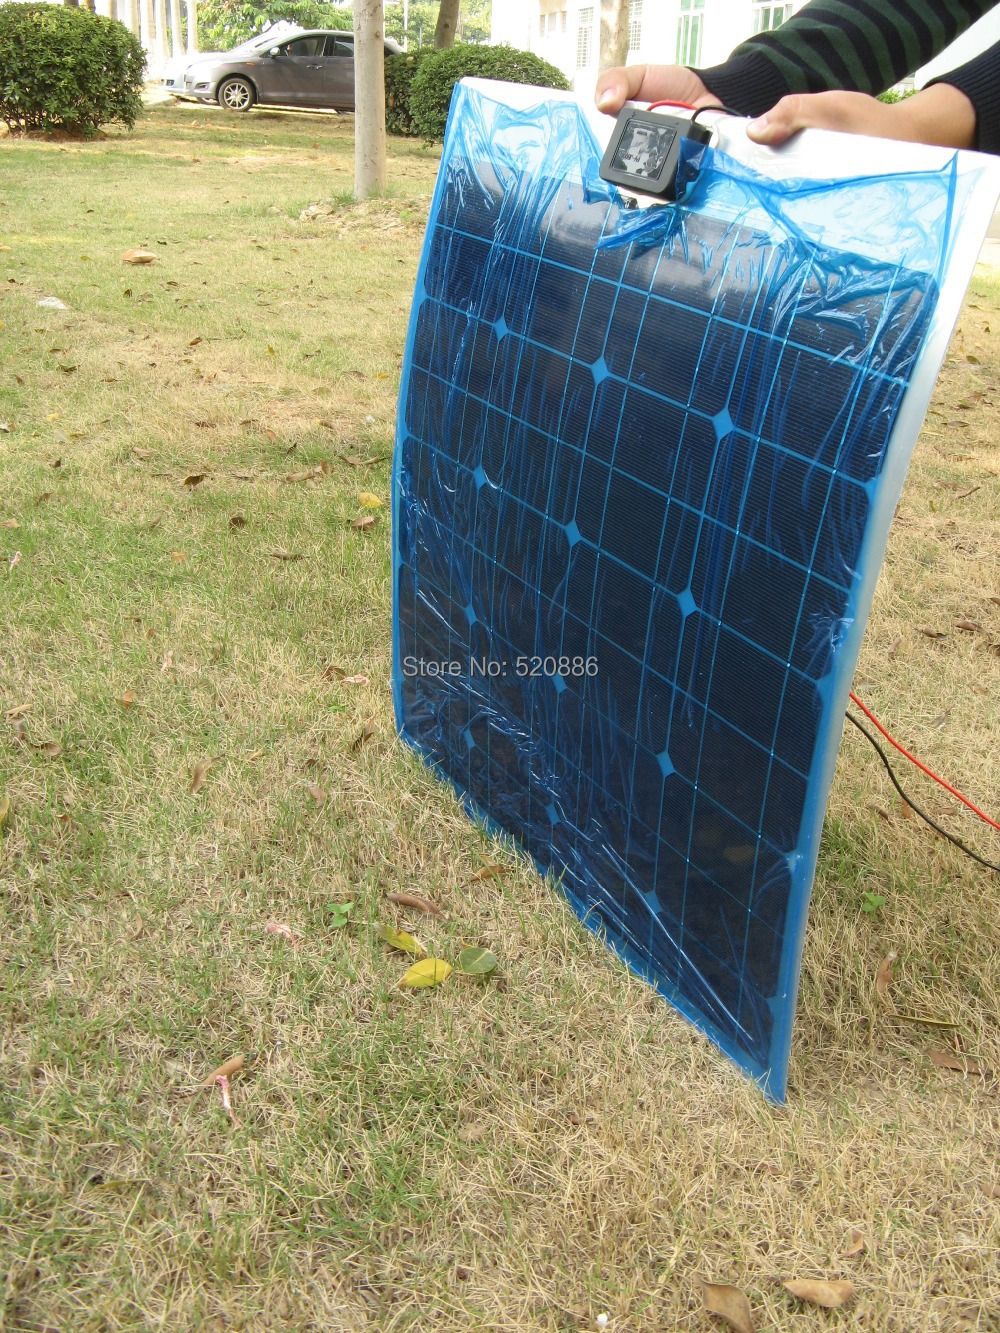 USA stock, no tax, 2pcs 40W mono semi-flexible pv solar panel 12v, for boat RV,  home solar system, car battery, free shipping 2pcs 4pcs mono 20v 100w flexible solar panel modules for fishing boat car rv 12v battery solar charger 36 solar cells 100w